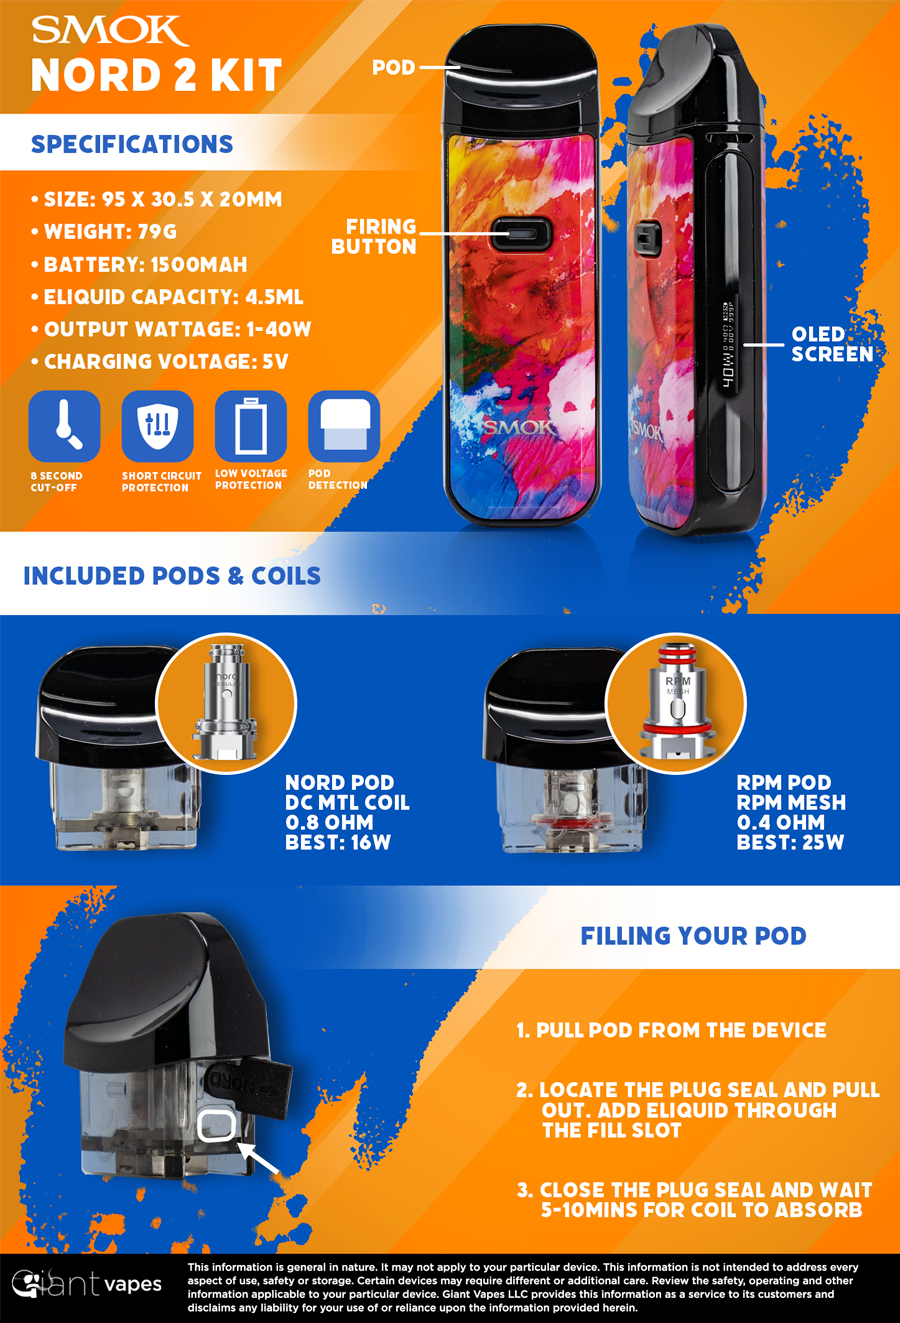 SMOK NORD 2 Infographic